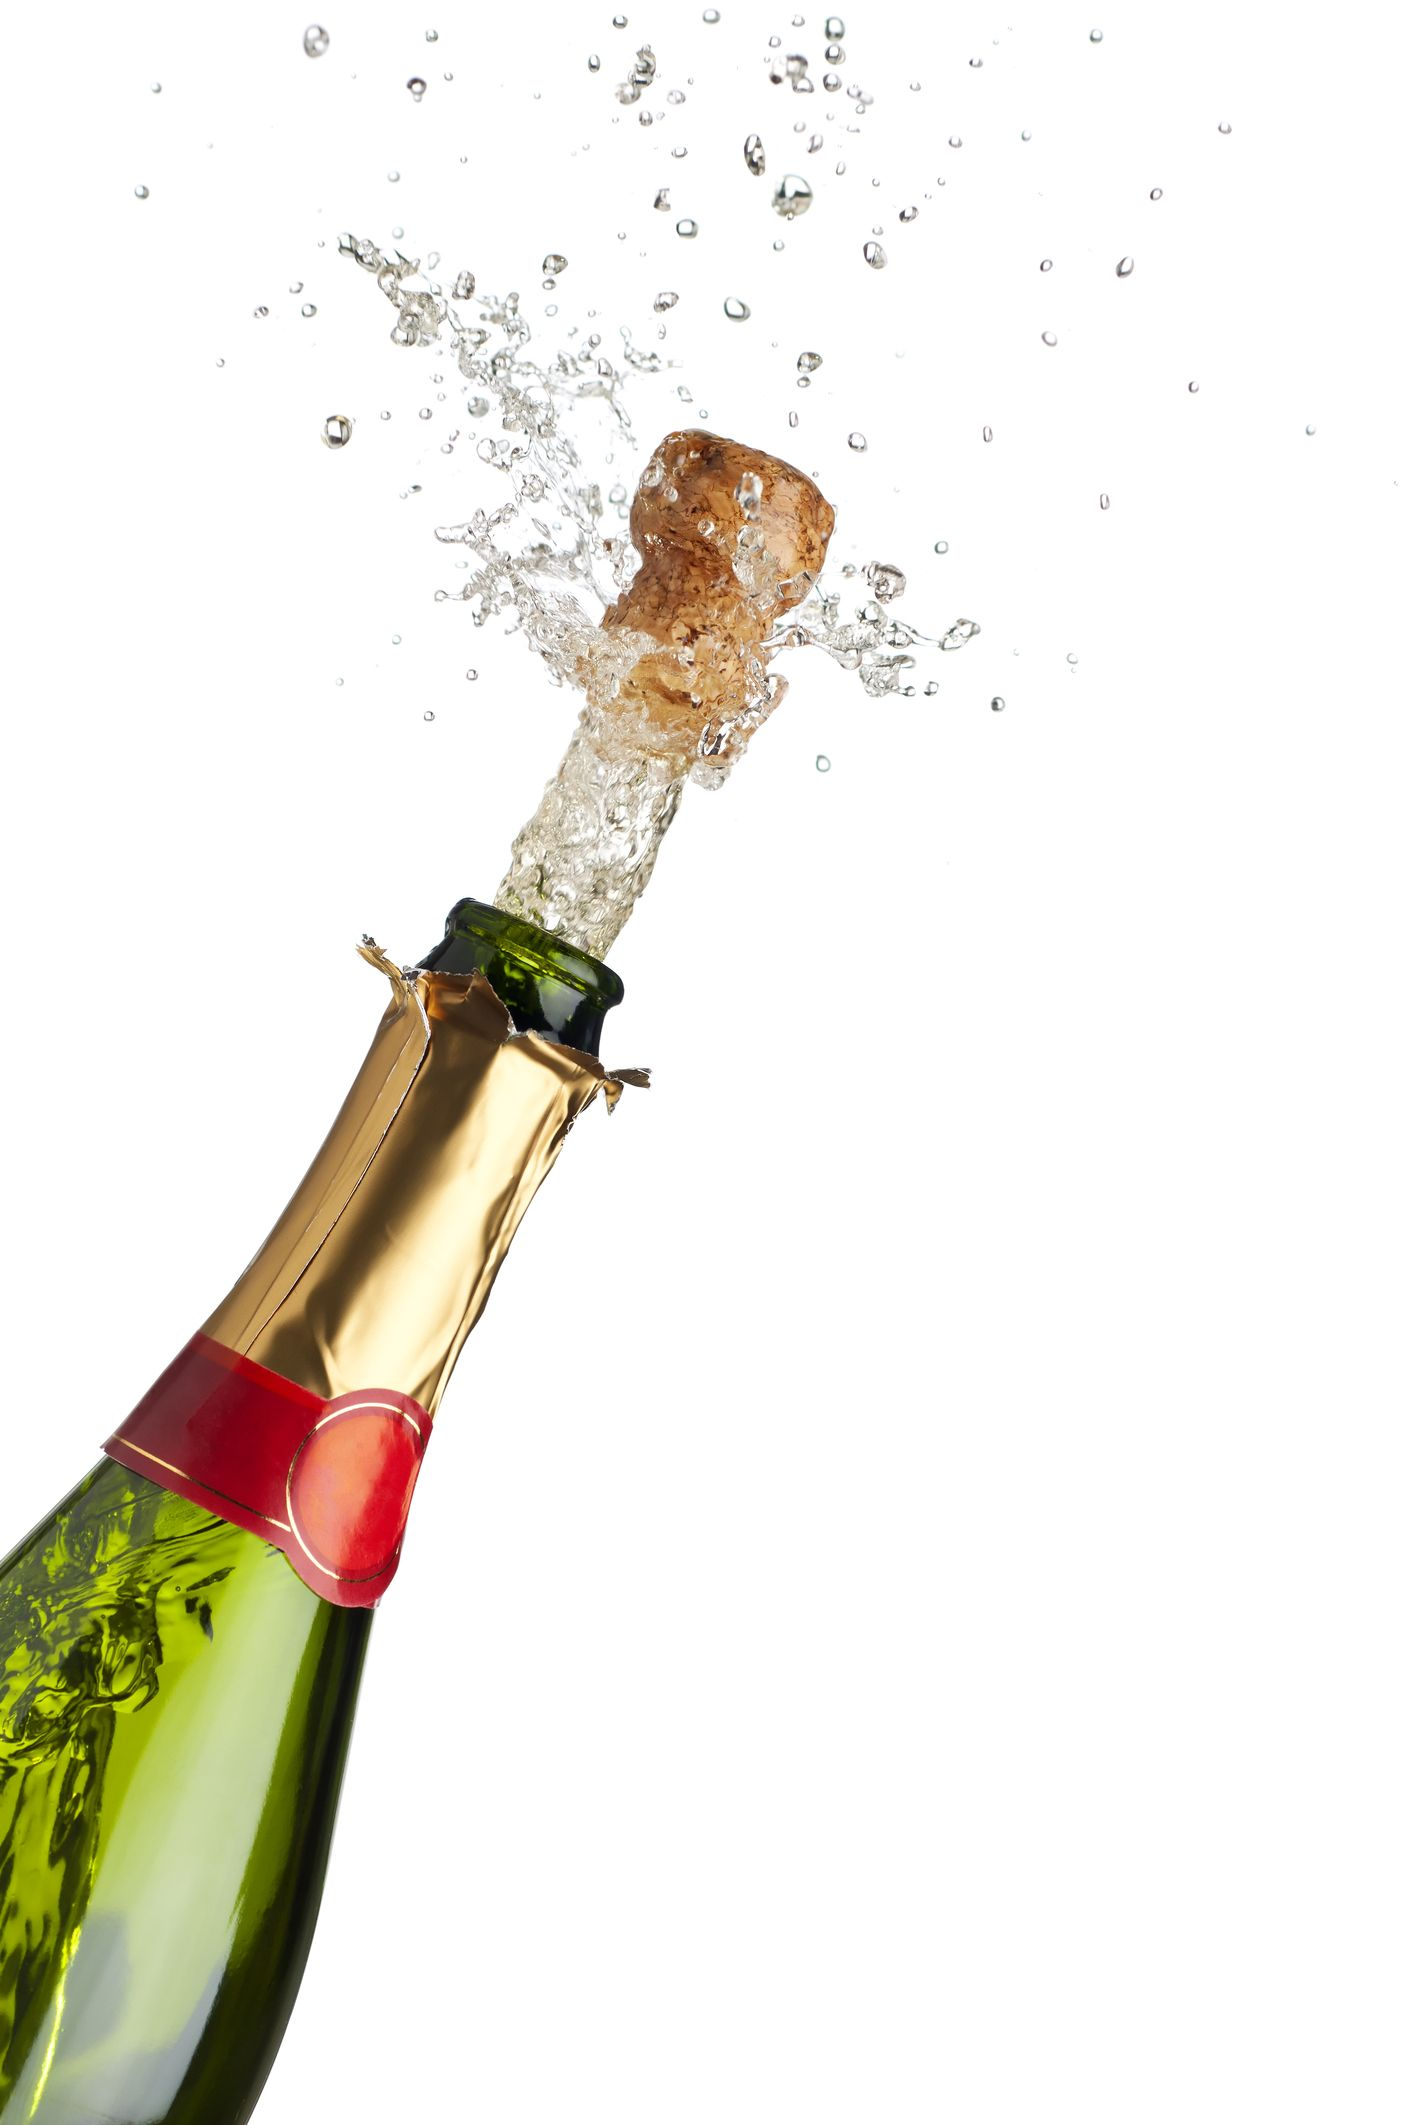 40 Greatest Things You Can Do With A Bottle Of Champagne